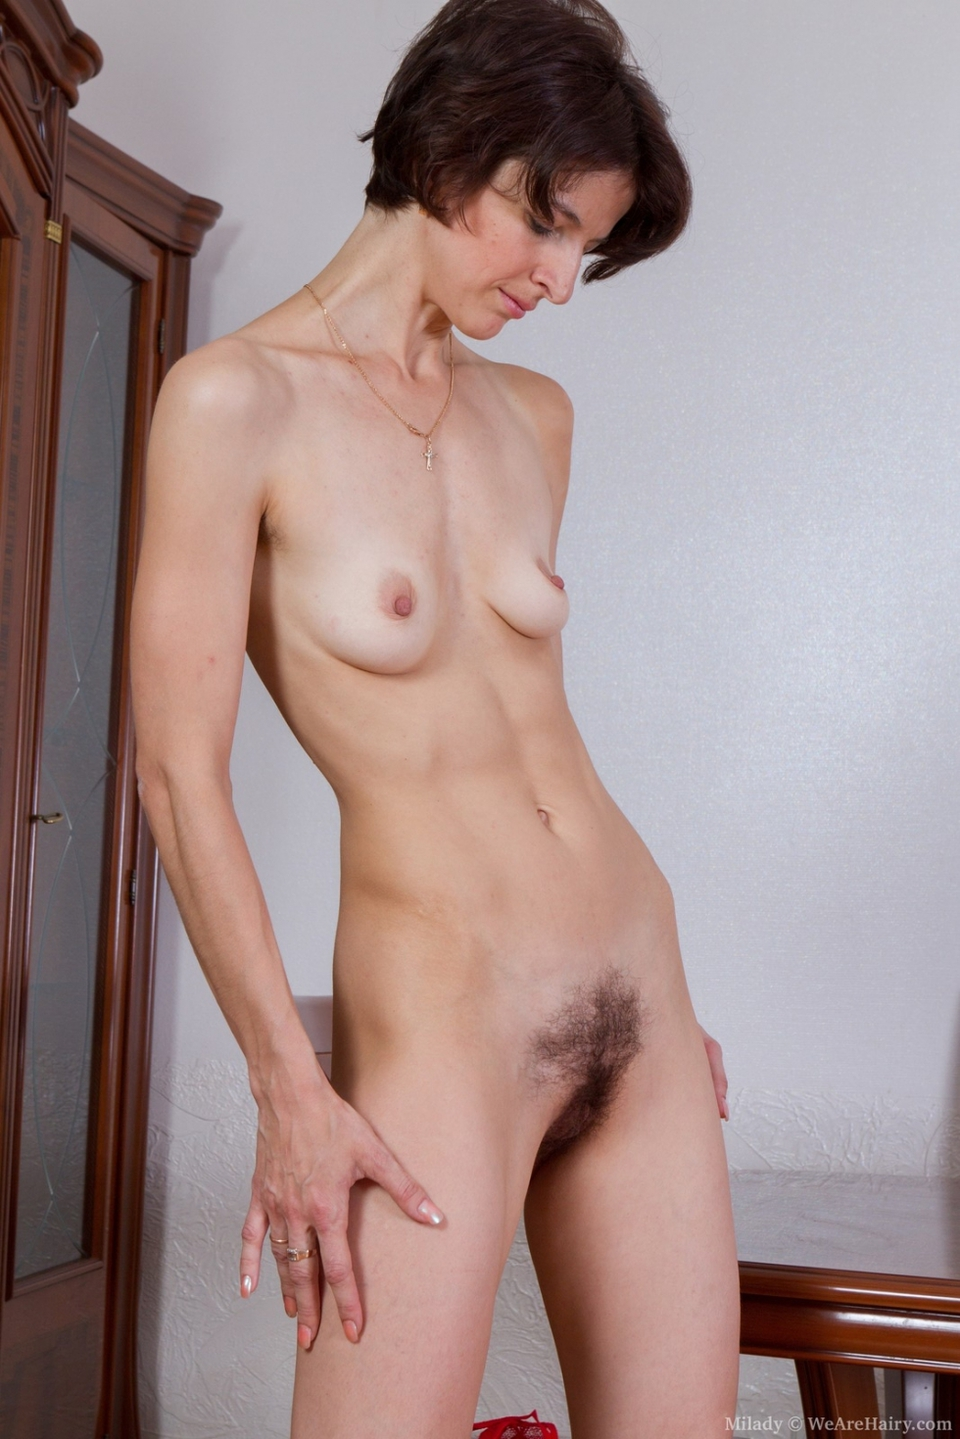 Tall hairy mature frontal nudity pics